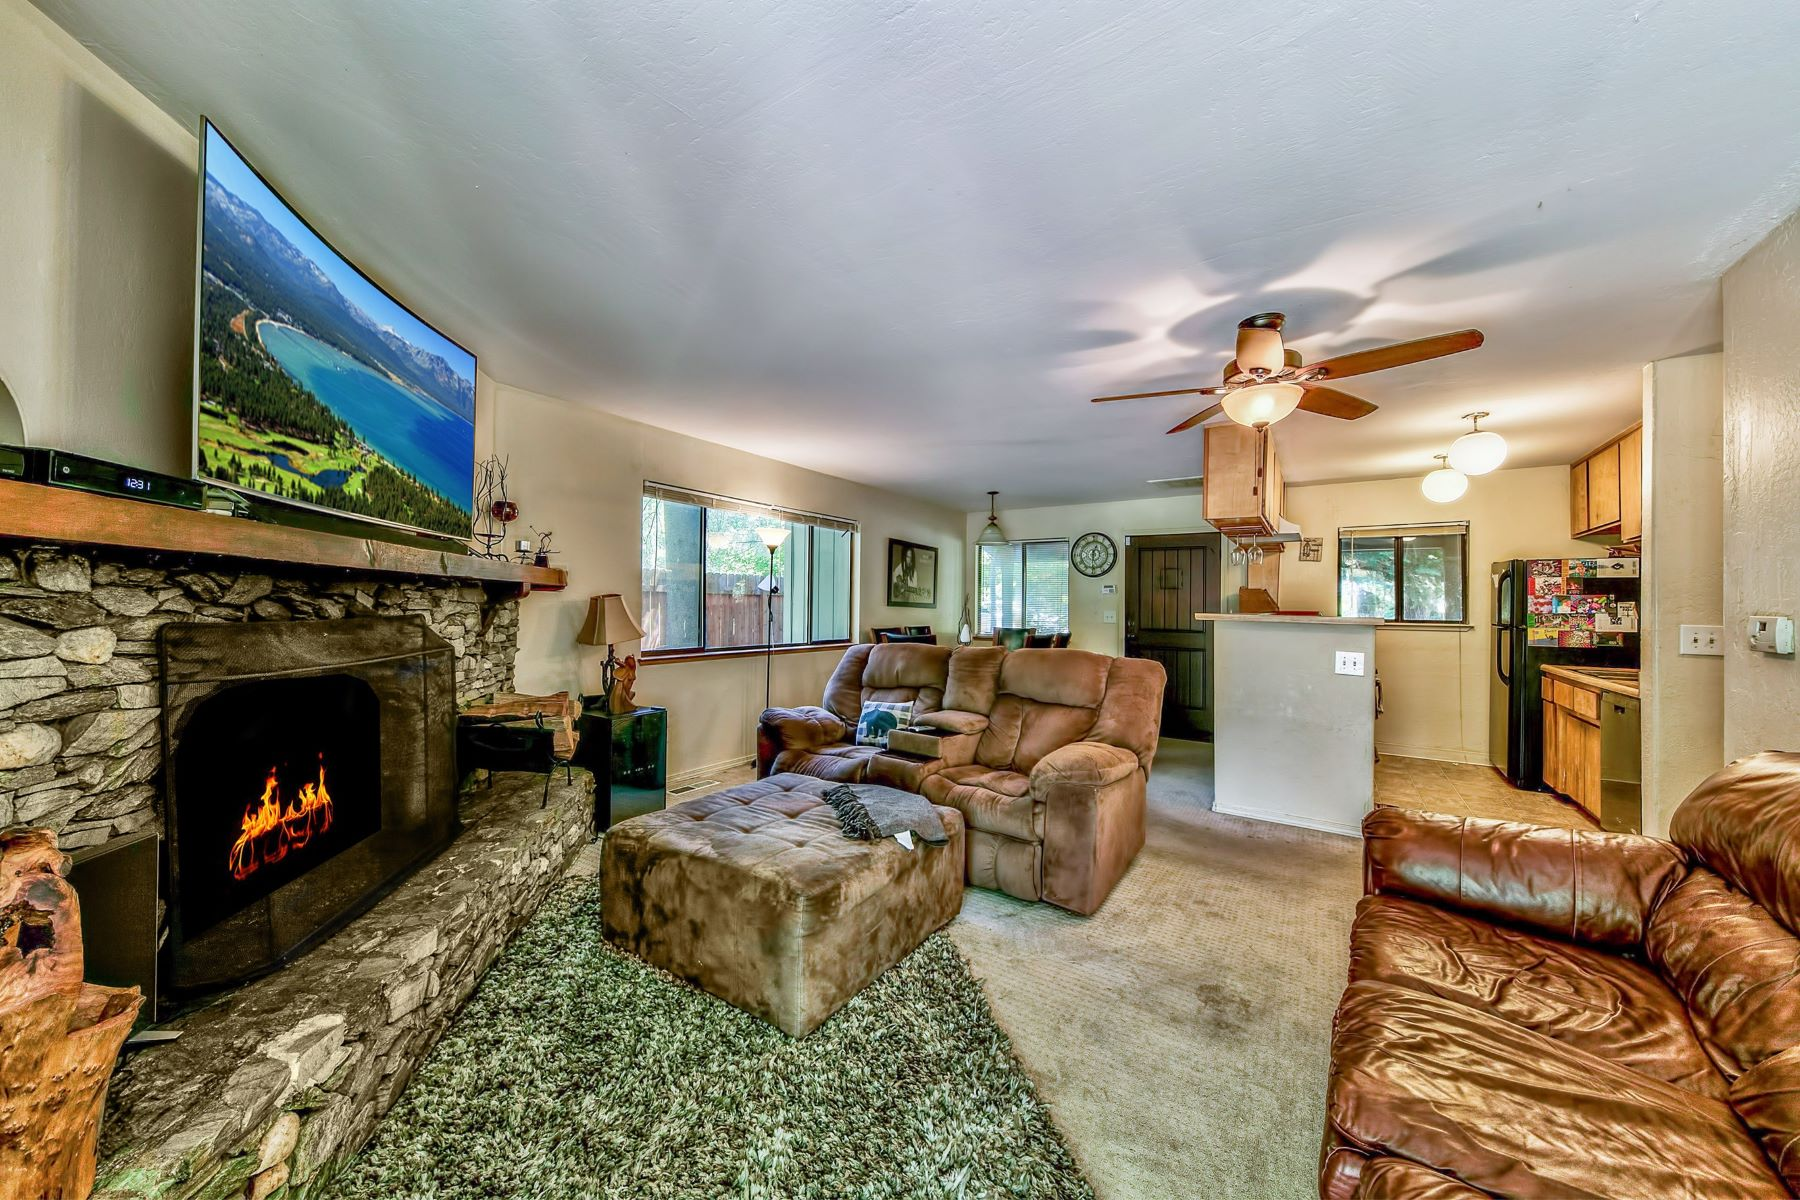 Additional photo for property listing at 1189 Sioux St, South Lake Tahoe, CA 96150 1189 Sioux St. South Lake Tahoe, California 96150 United States